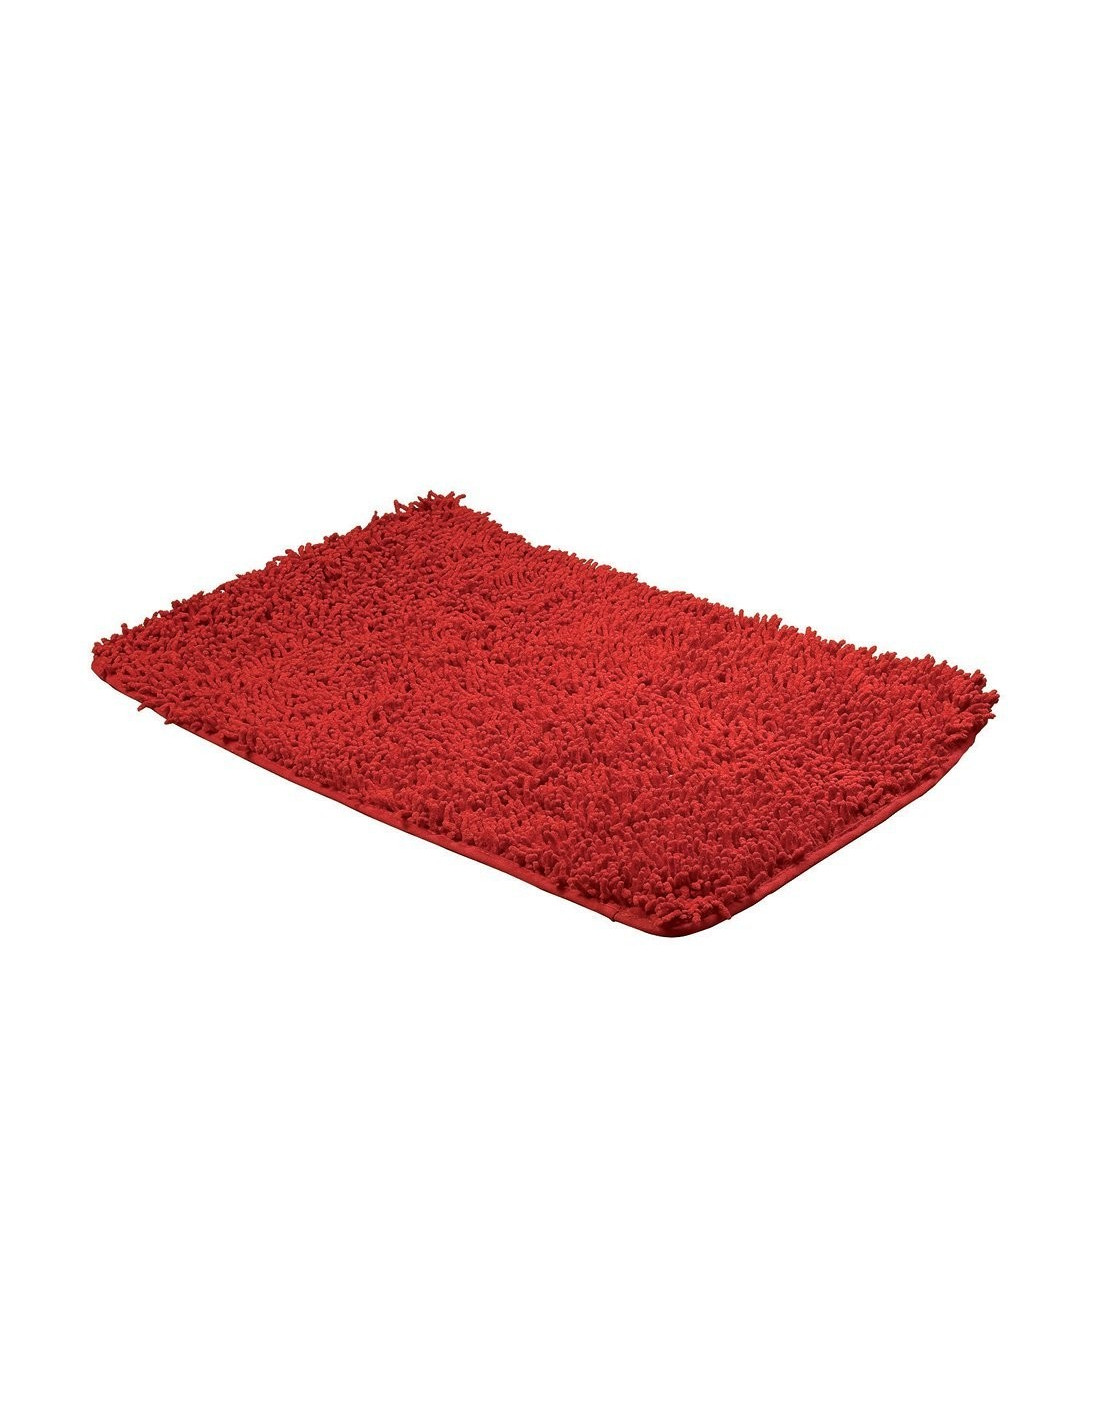 frandis tapis de bain maille chenille coton rouge 50x80cm hyper brico. Black Bedroom Furniture Sets. Home Design Ideas